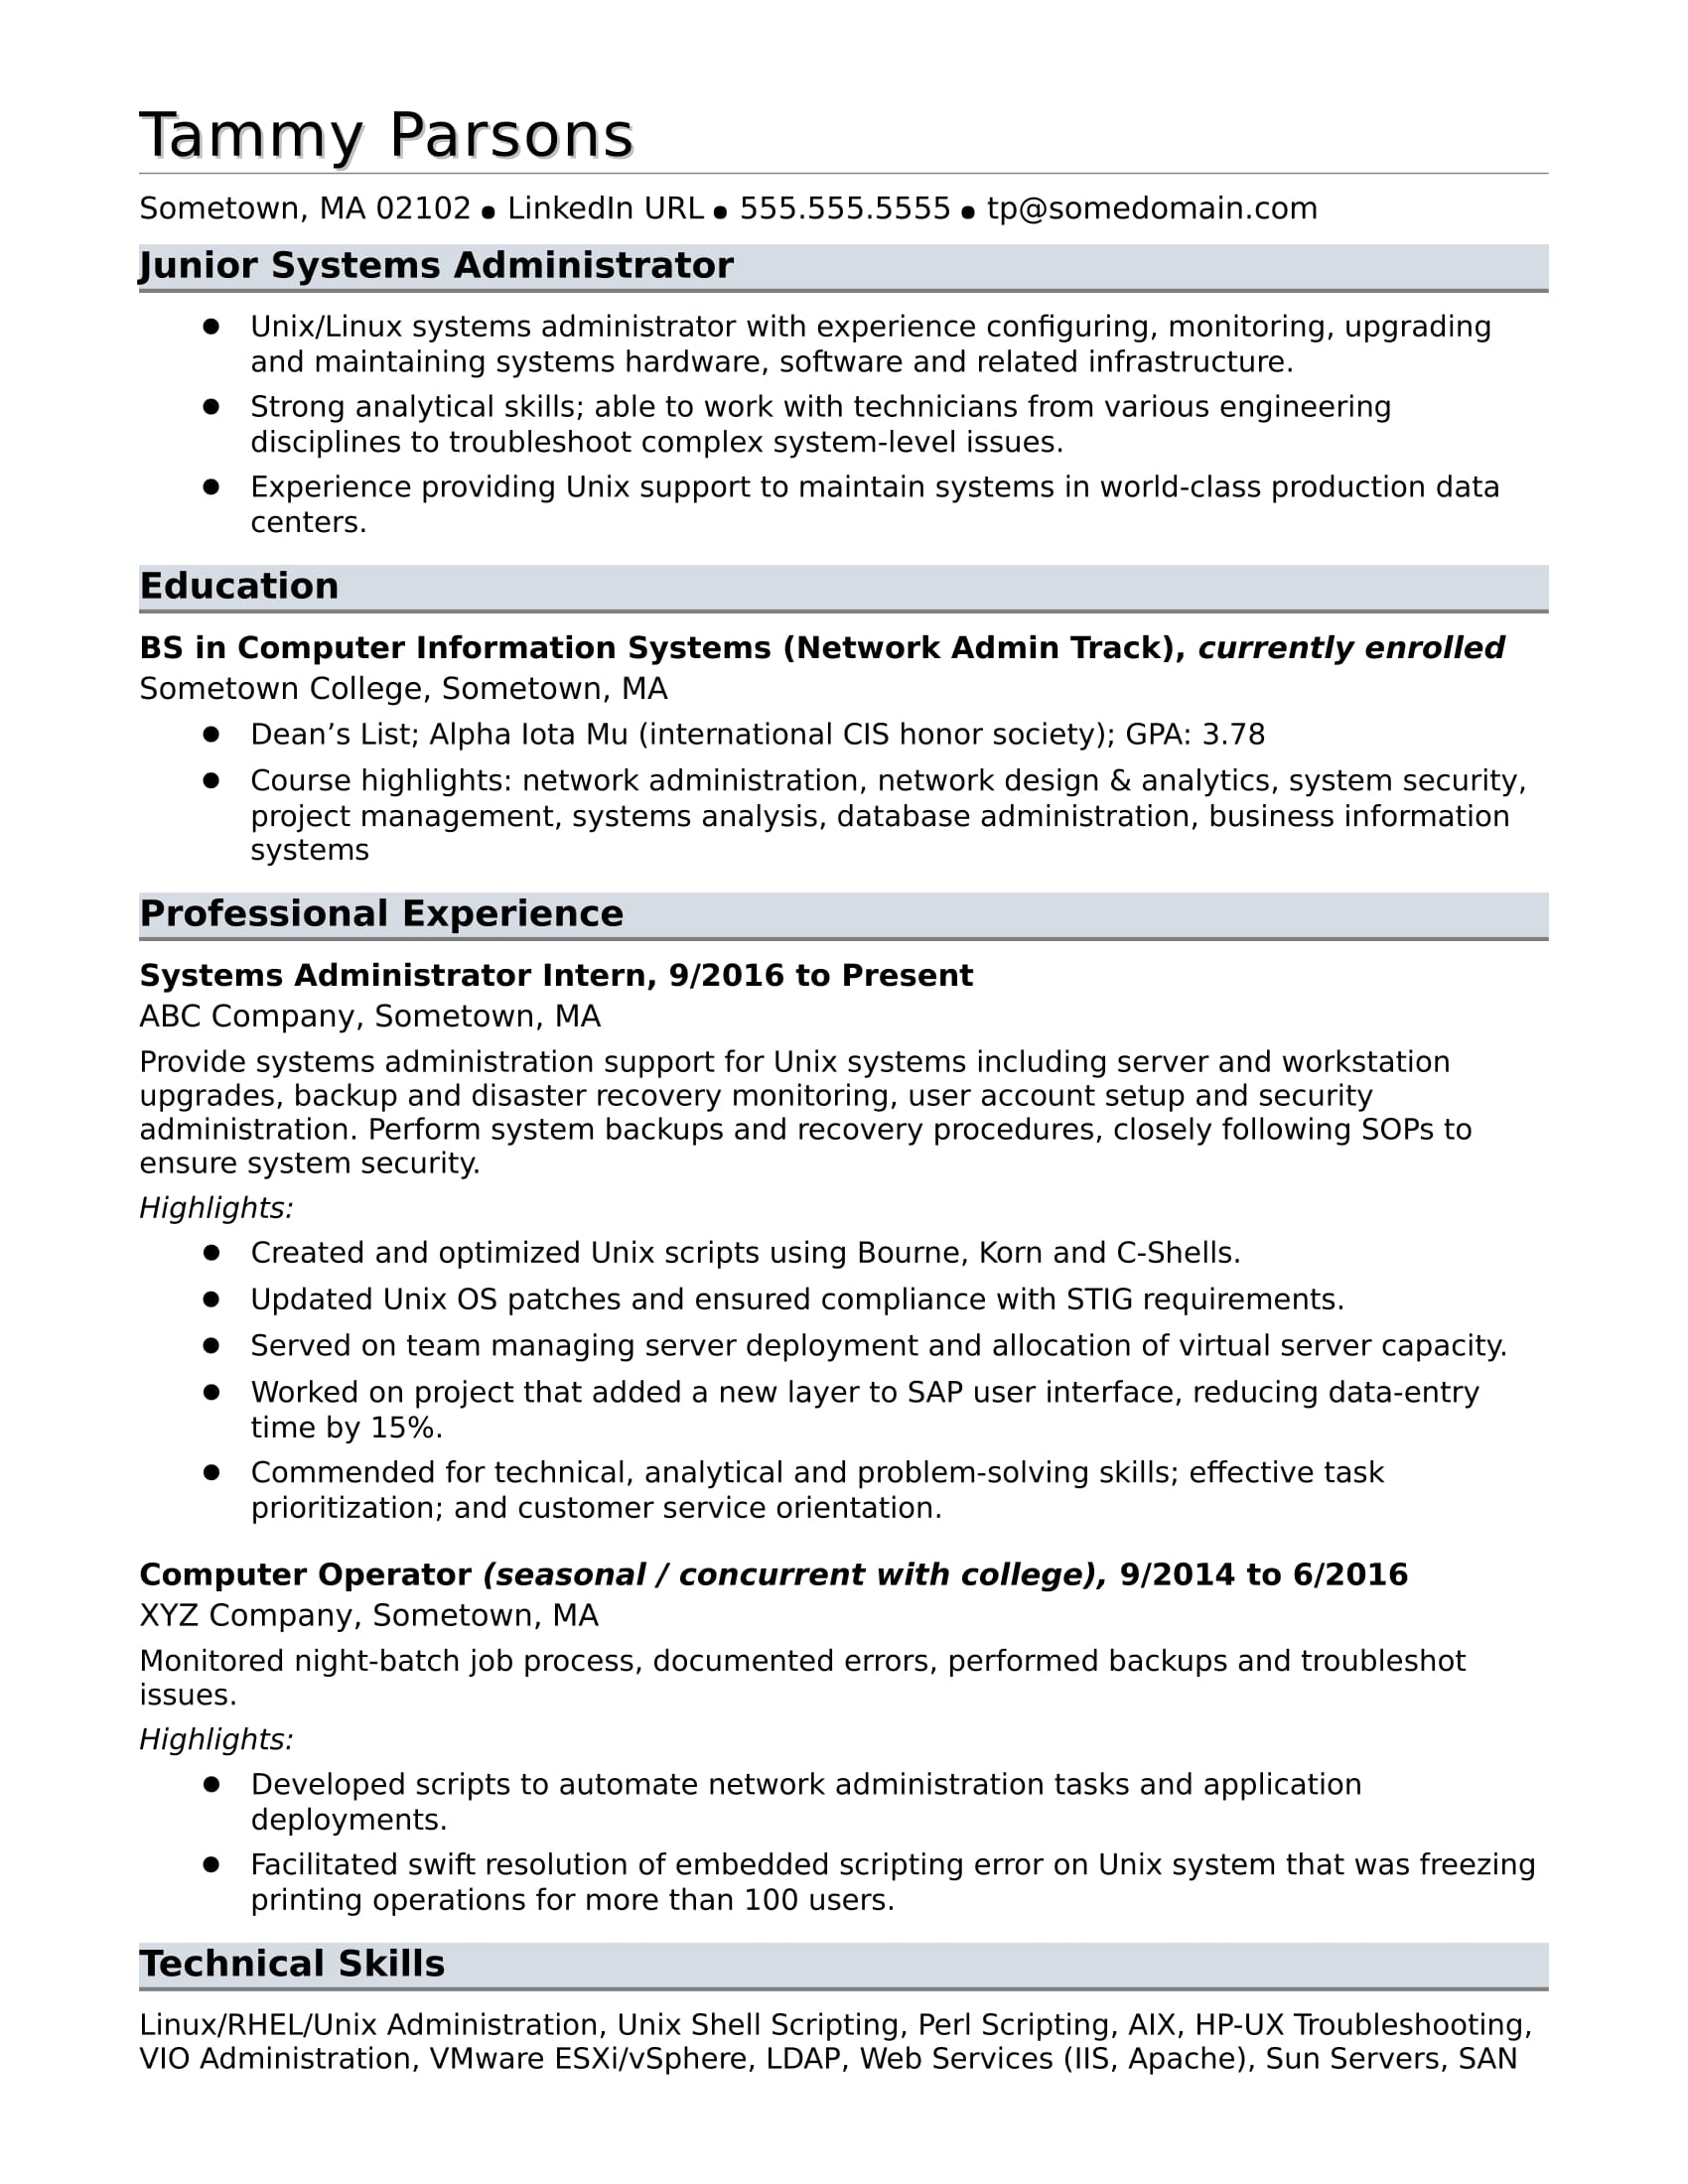 resume Ma Resume sample resume for an entry level systems administrator monster com administrator